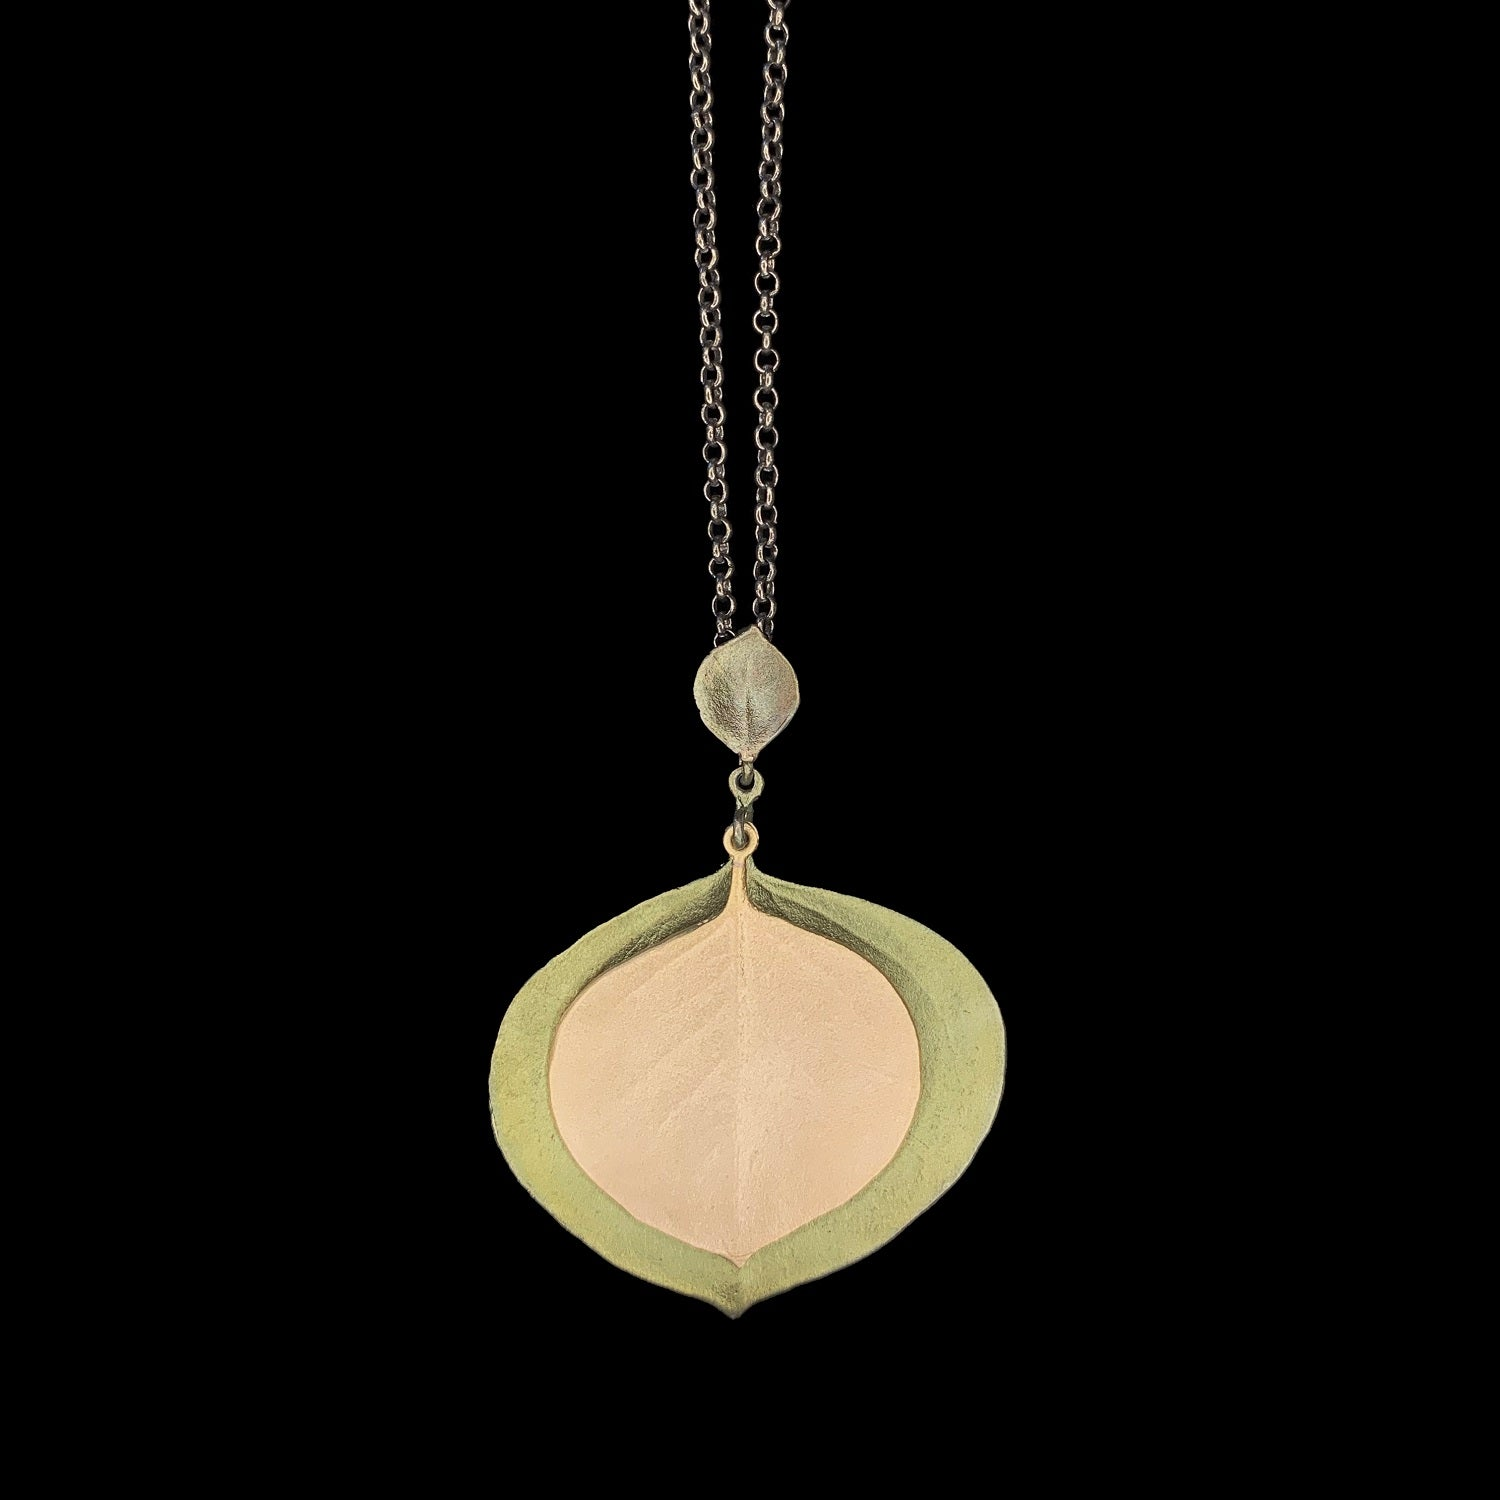 Round Leaf Eucalyptus Pendant - Large Double Leaves